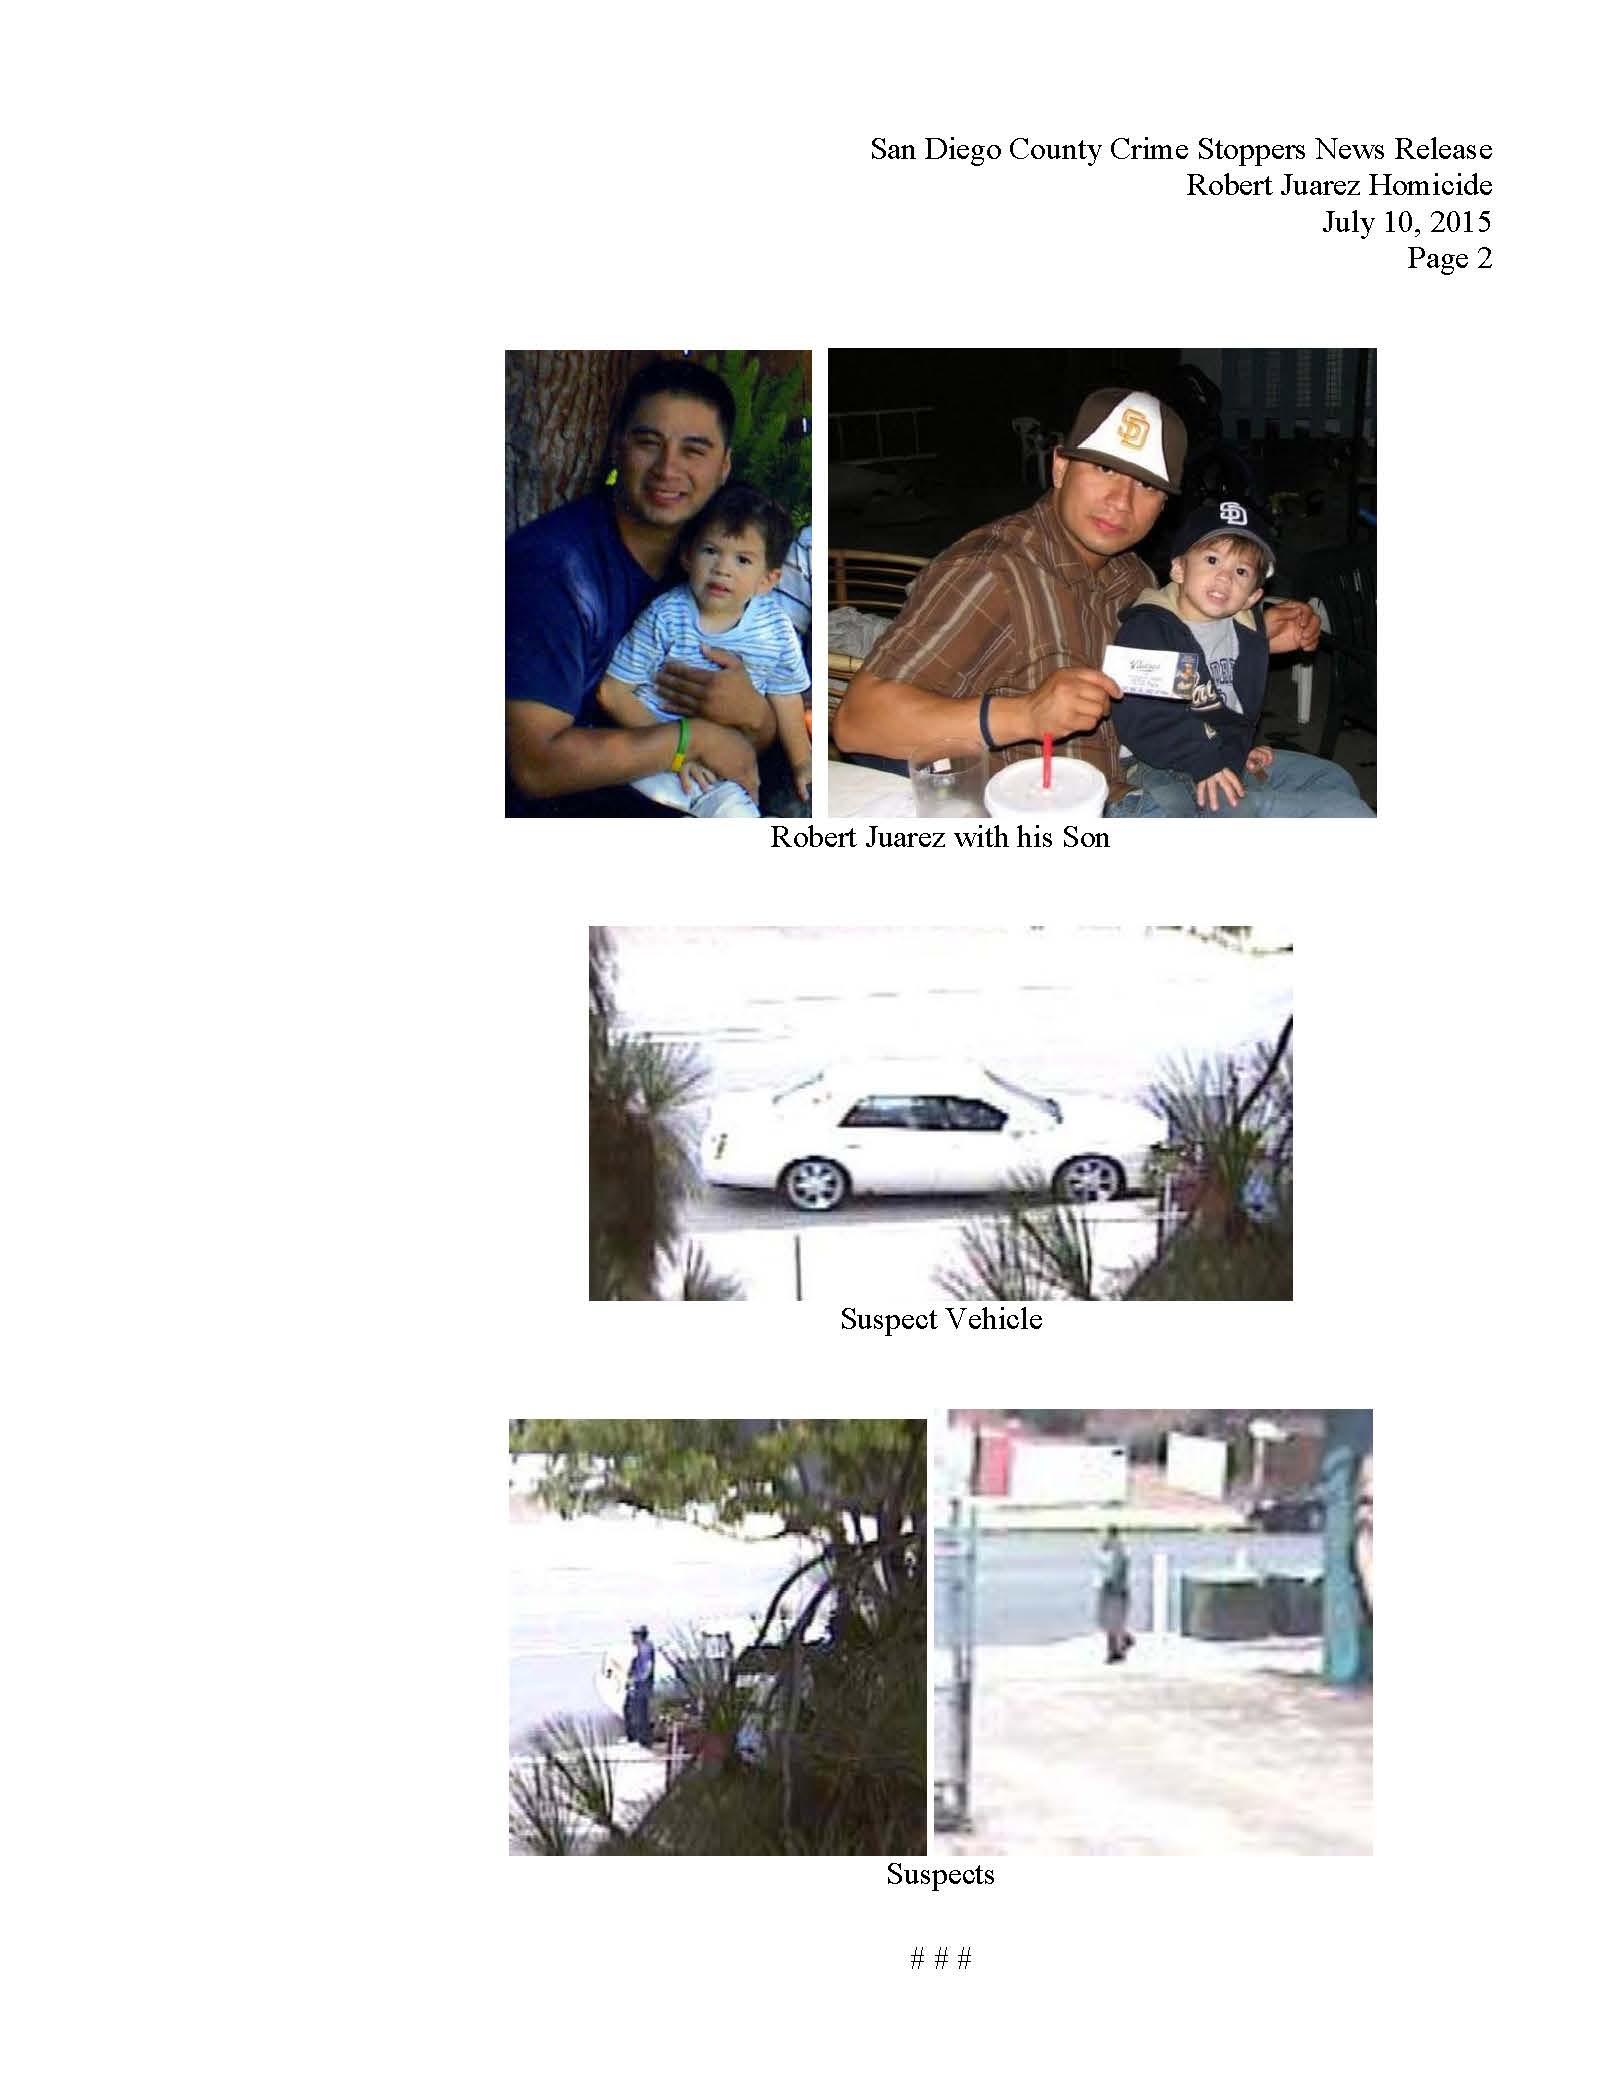 071015 Robert Juarez Homicide 7th Anniversary_Page_2